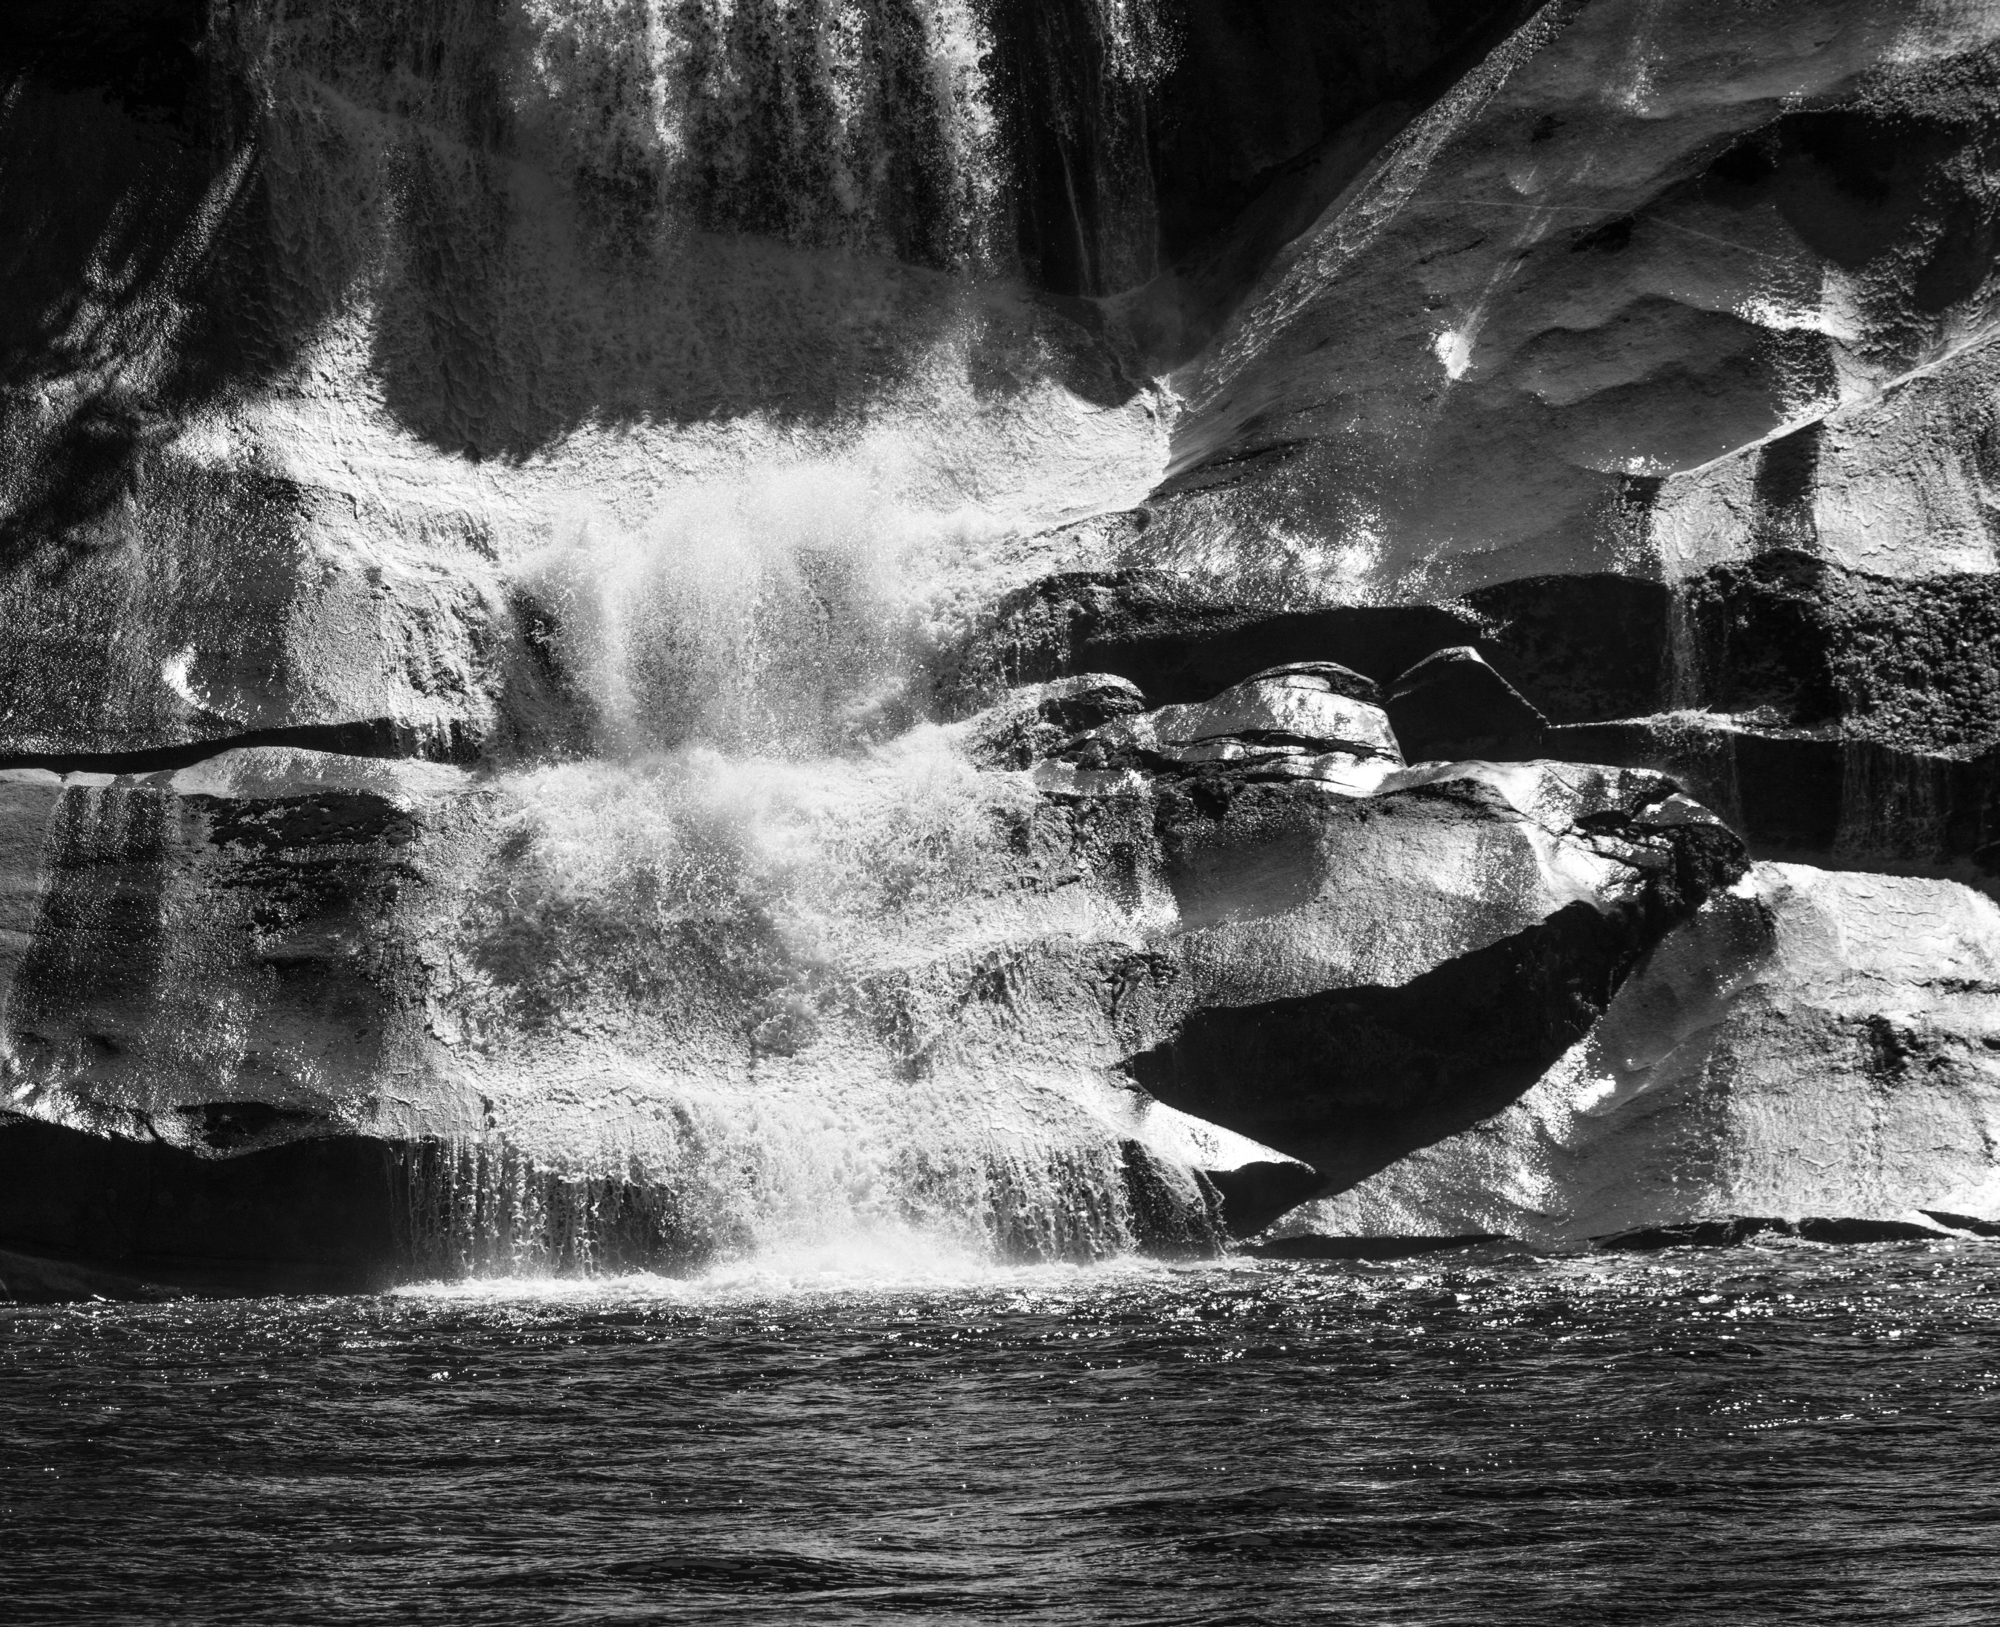 Black & White Waterfall